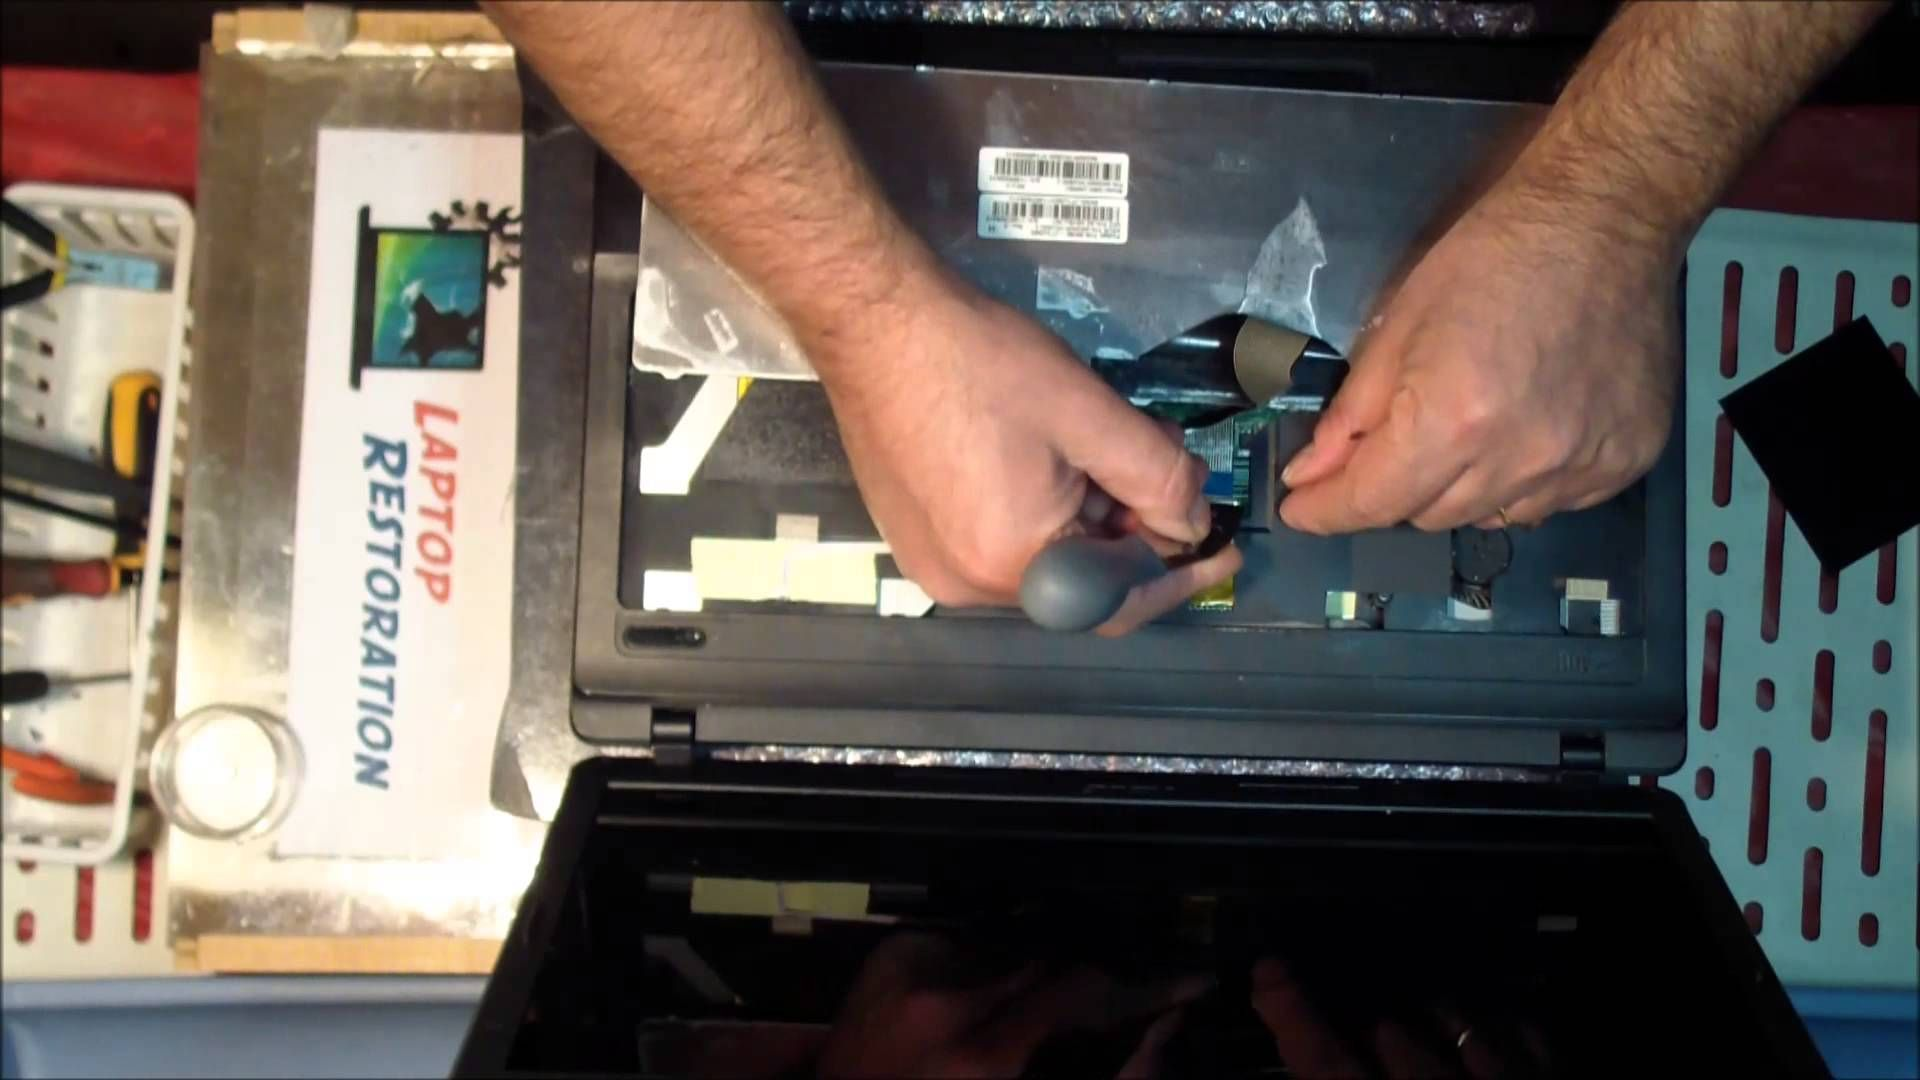 Asus X54c Laptop Disassembly  Take A Part